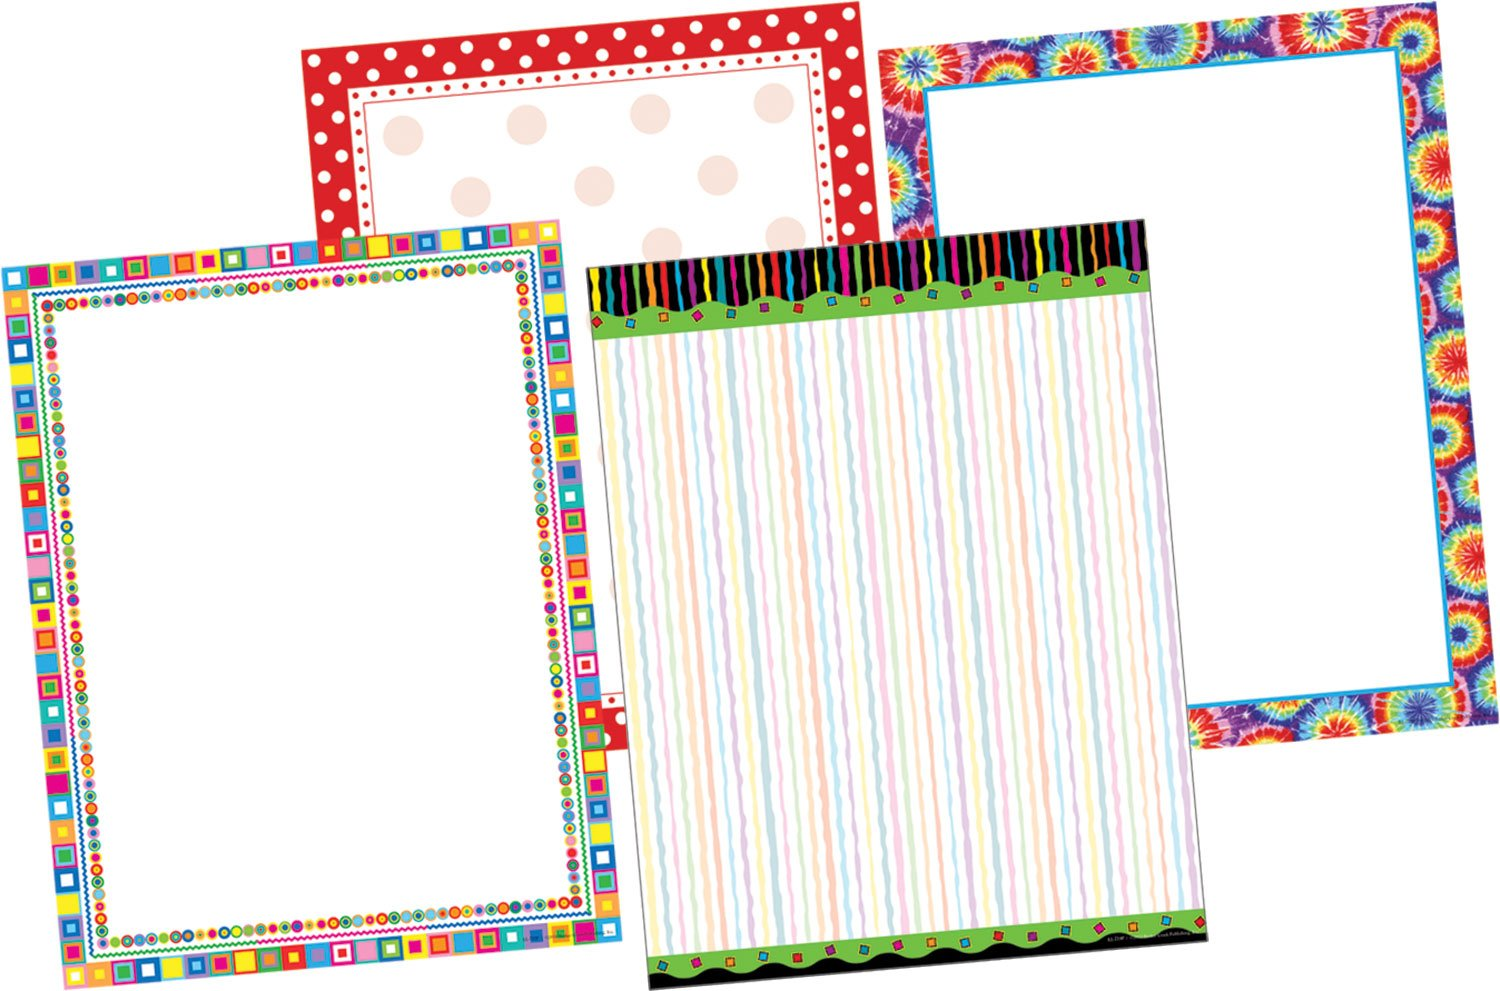 Barker Creek - Office Products In The Groove Designer Computer Paper Set, 50 Each of 4 Designs (SS-0751)